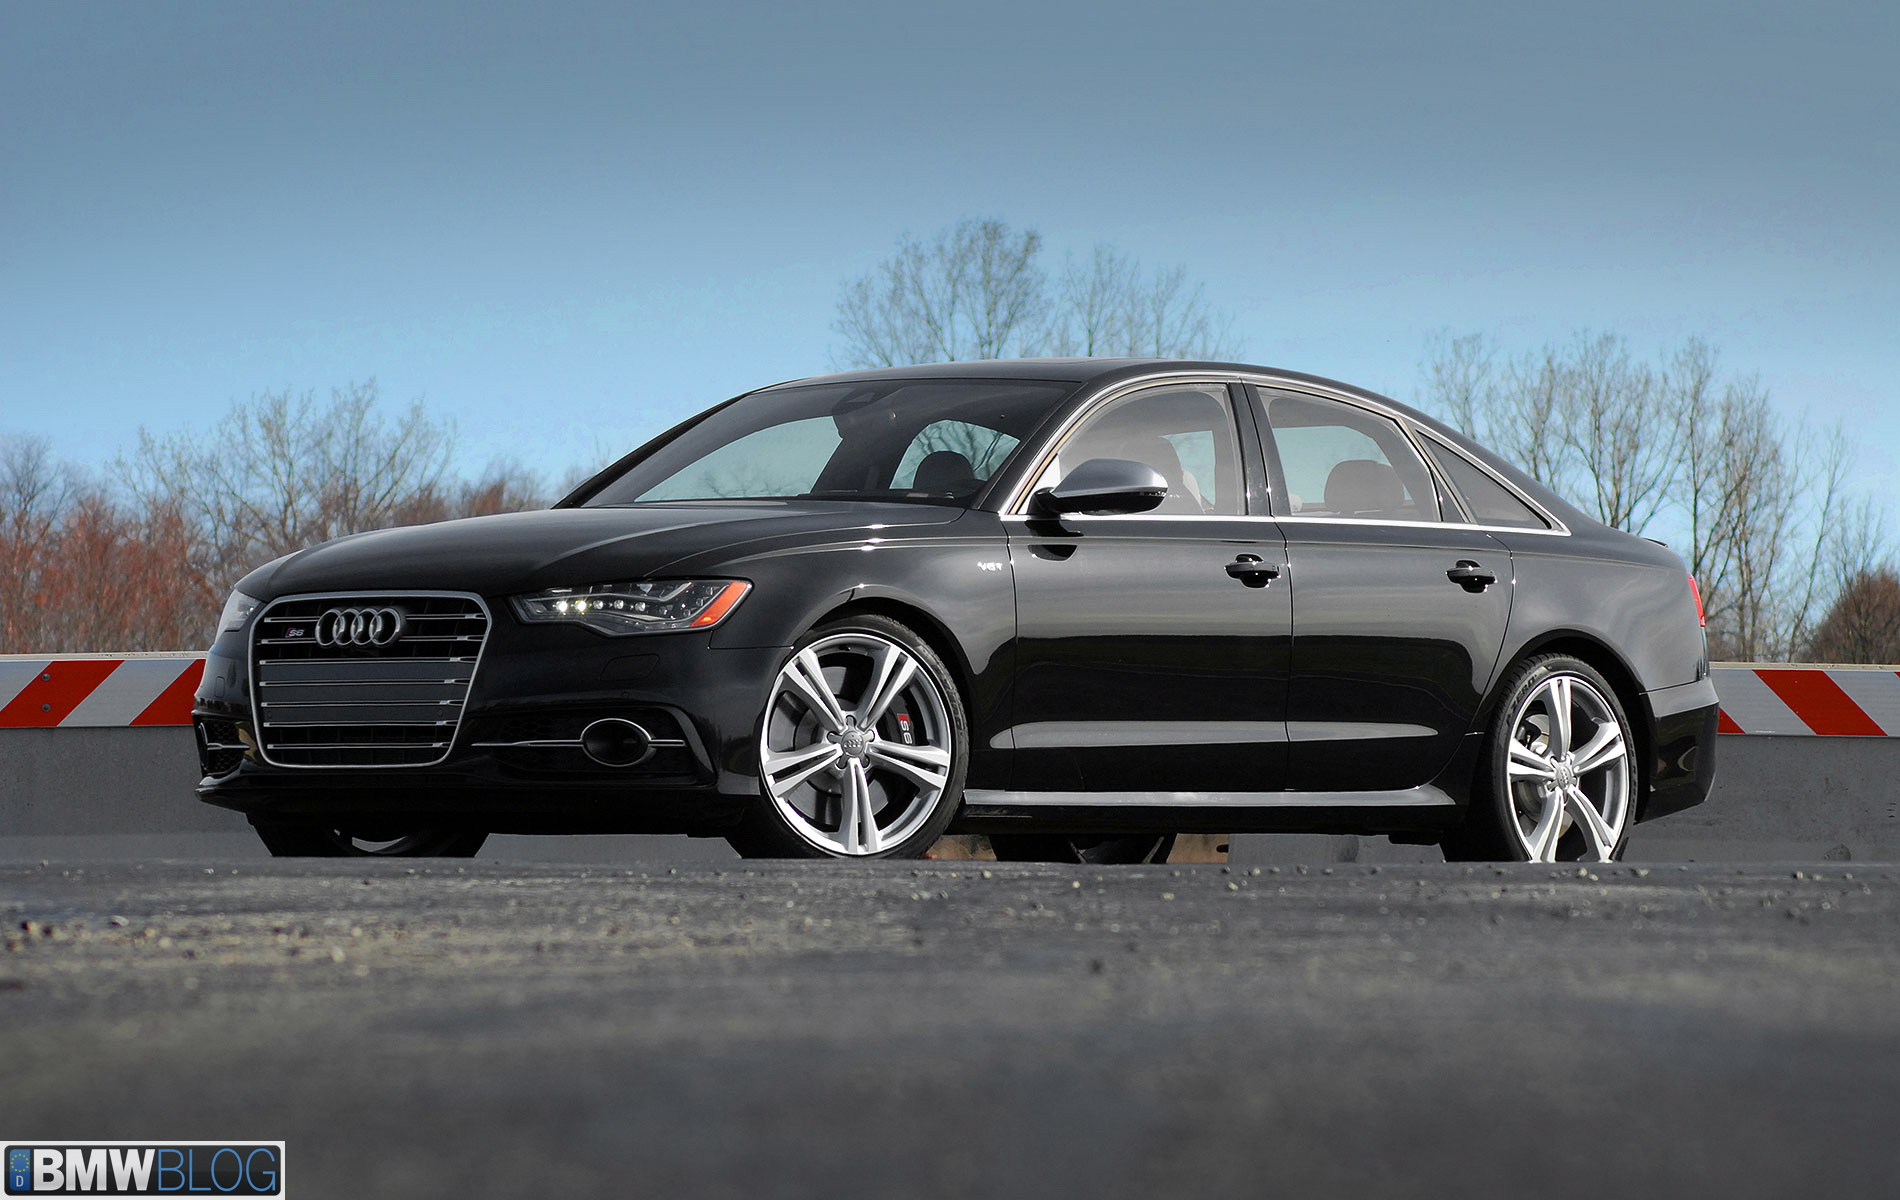 Mercedes Of Bedford >> 2013 Audi S6 Test Drive and Review